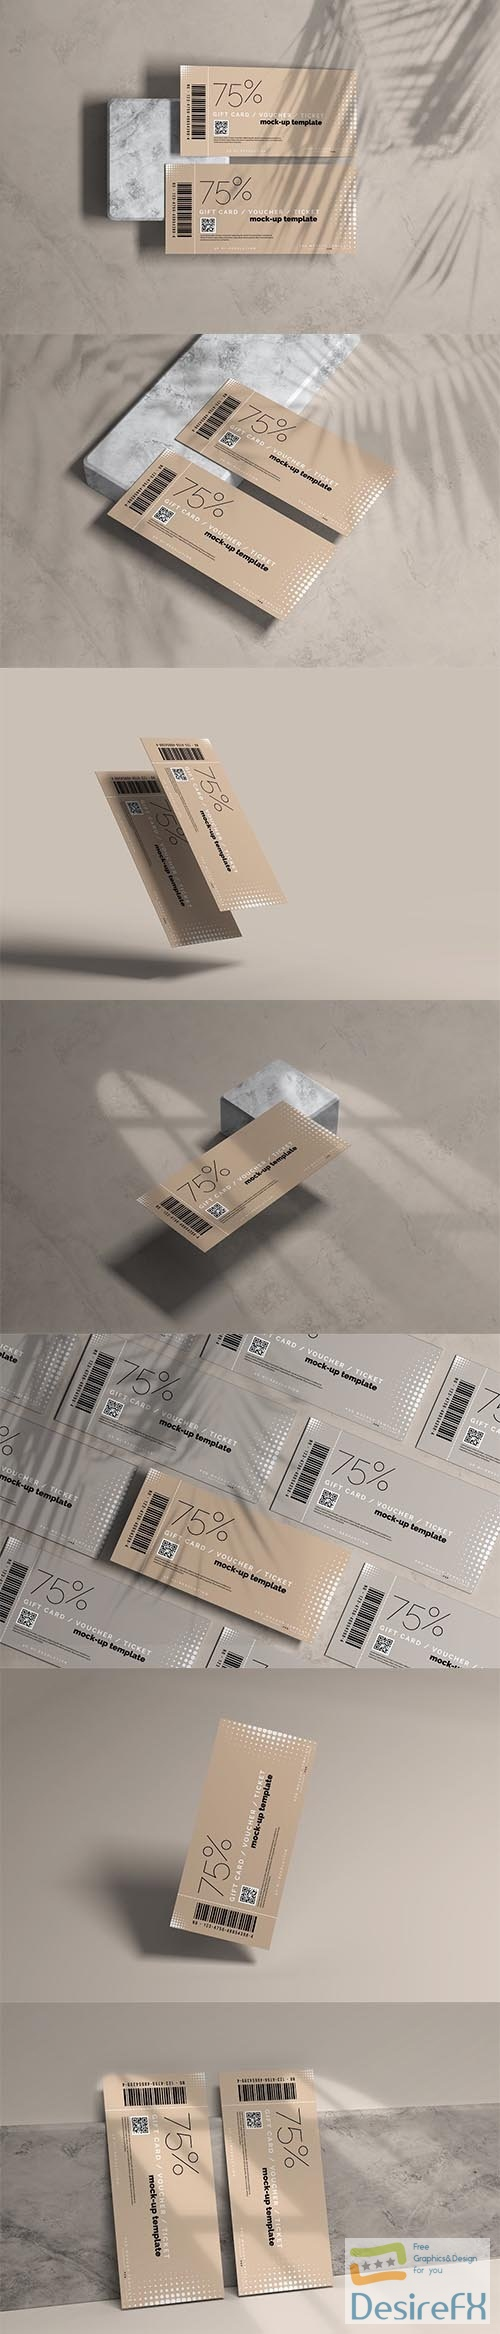 CreativeMarket - Voucher or Ticket Mockup 5606918